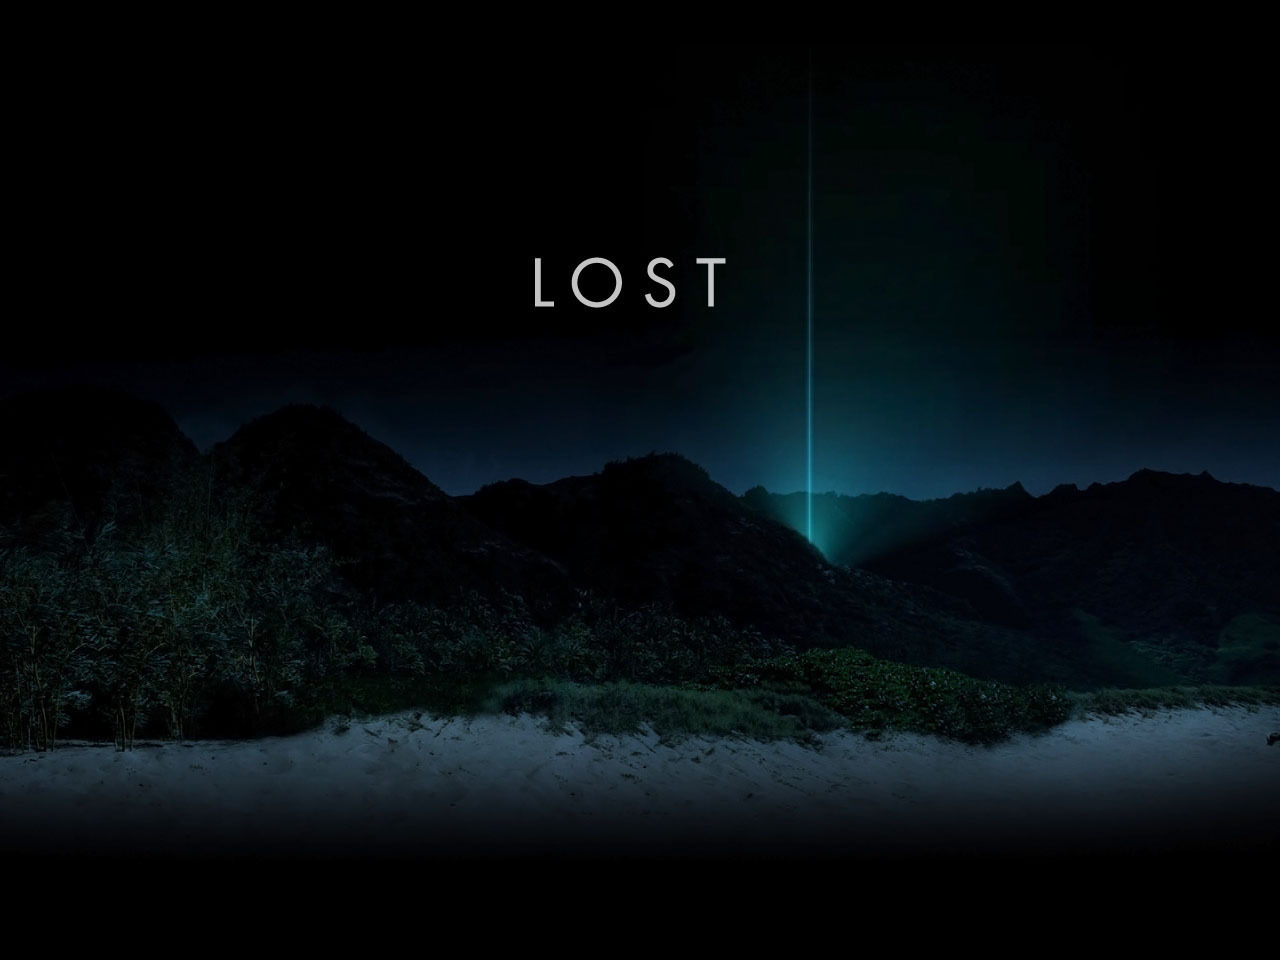 lost facebook wallpaper 4263027 fanpop